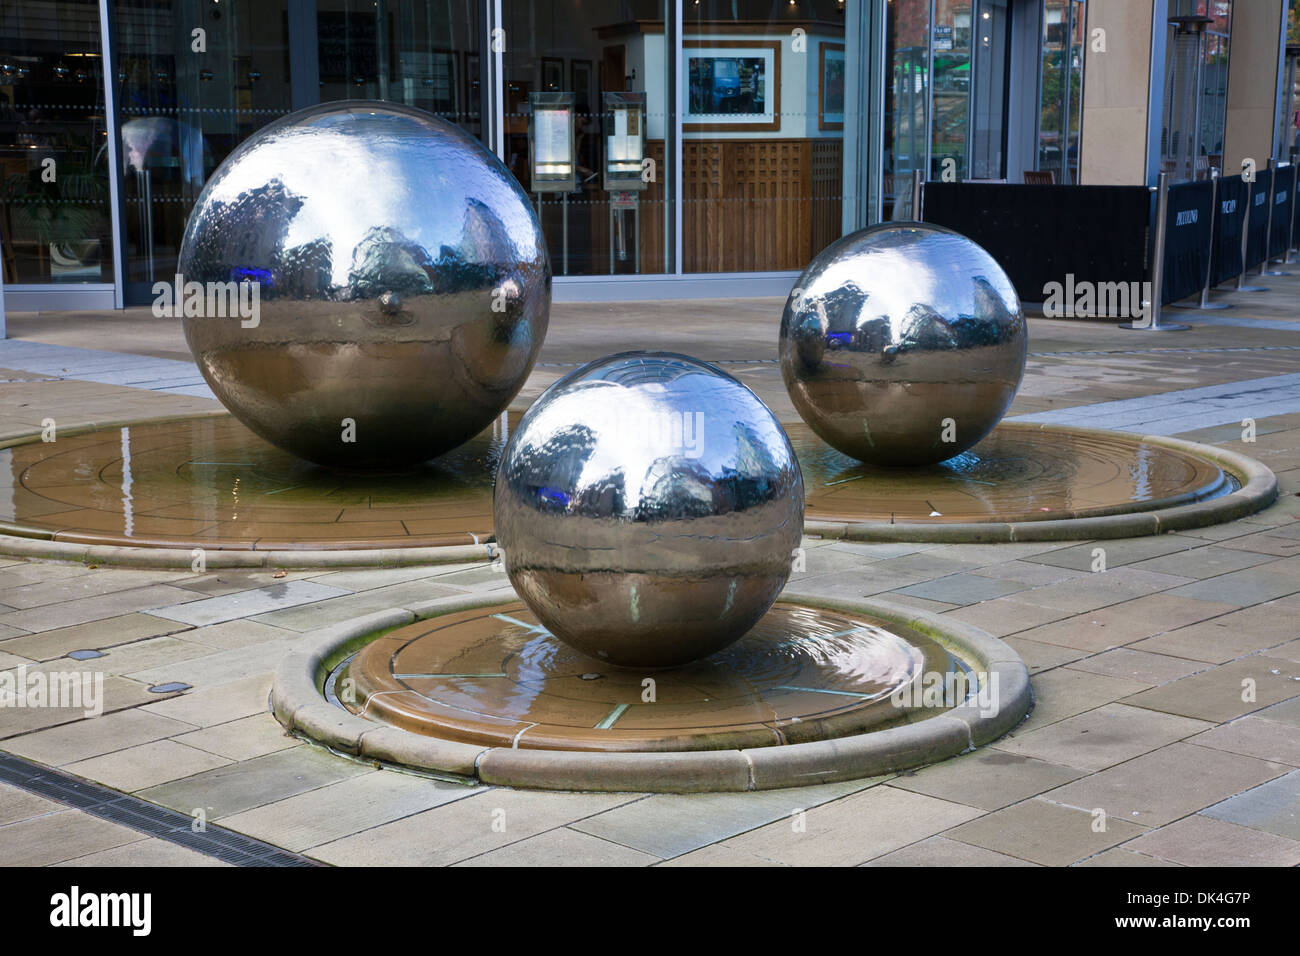 Three silver balls with flowing water, Sheffield (South Yorkshire, England) forming urban design features within the city center - Stock Image